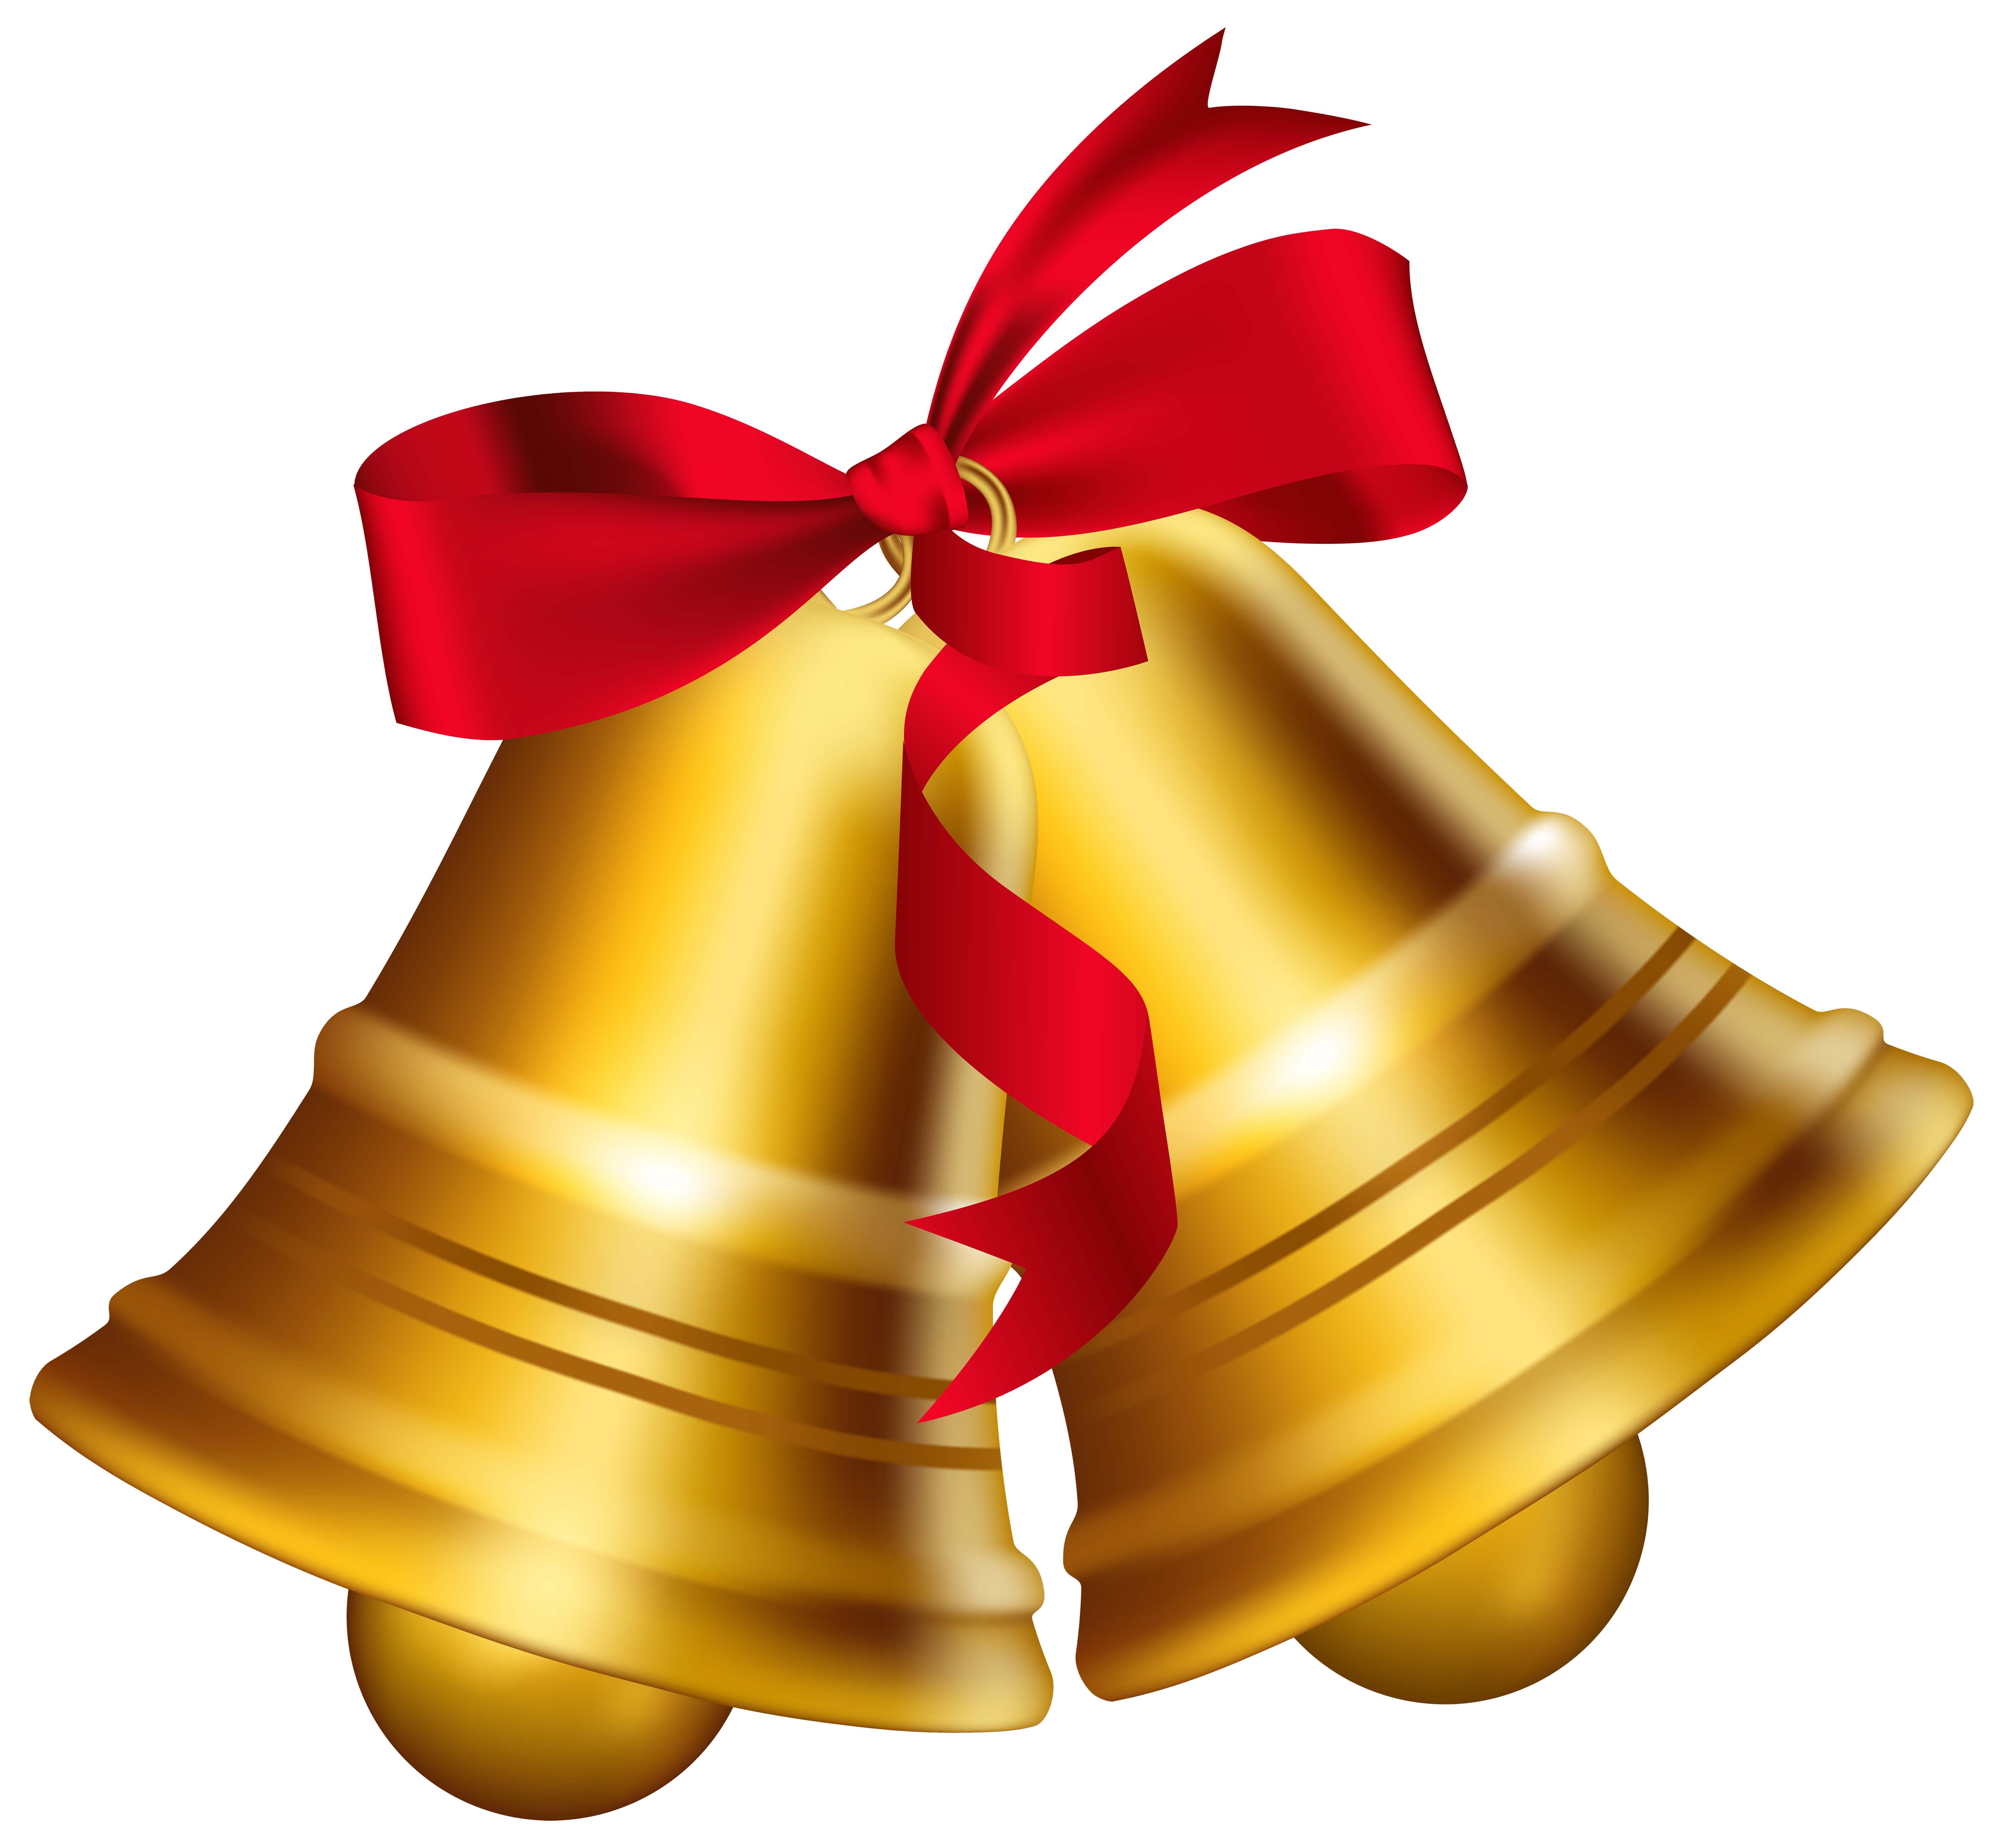 Christmas bells with bow. Ornament clipart bell